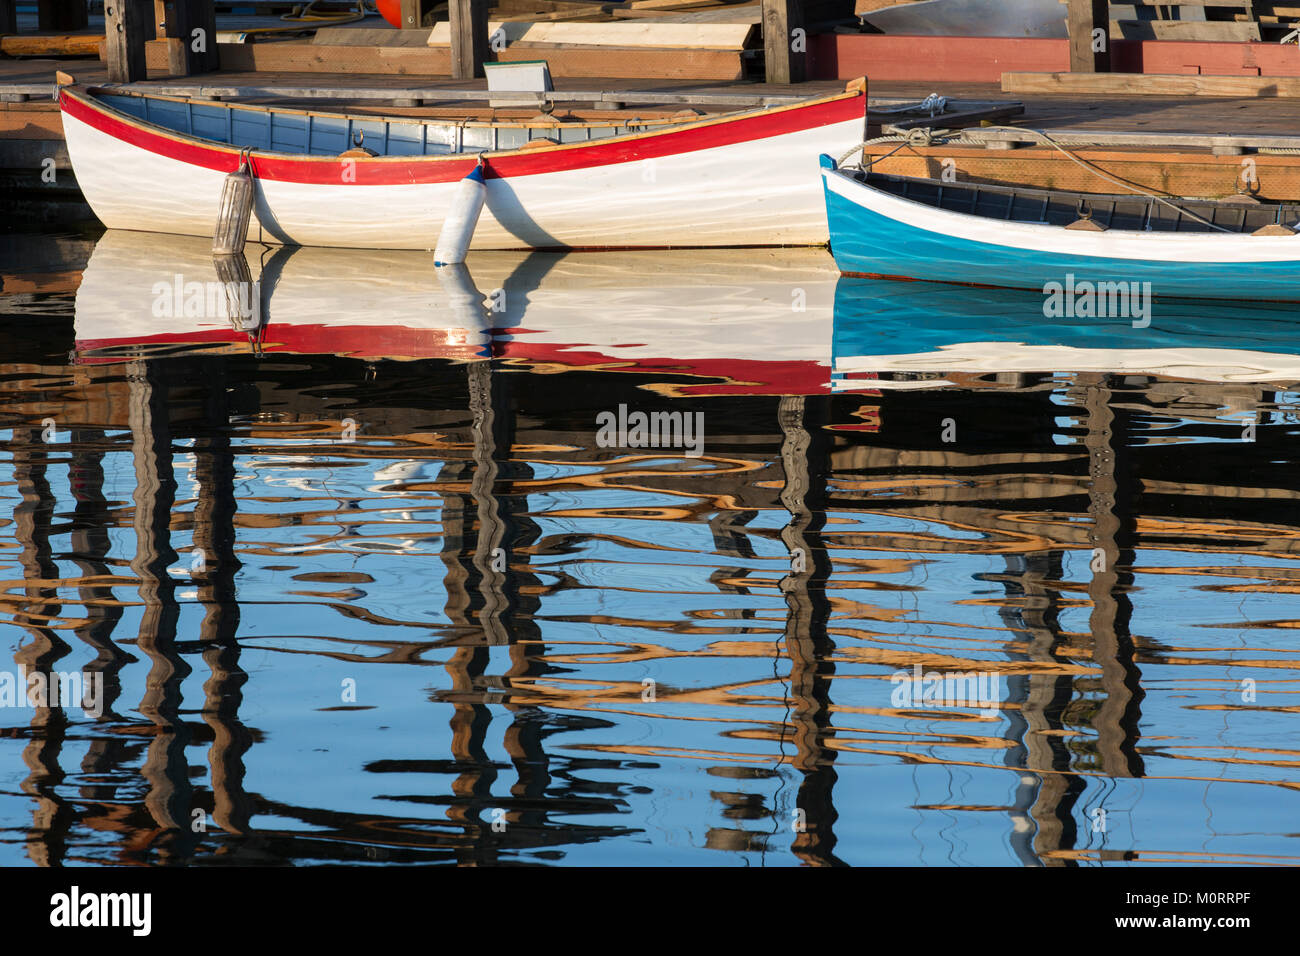 United States, Washington, Seattle, Lake Union, Center for Wooden Boats - Stock Image